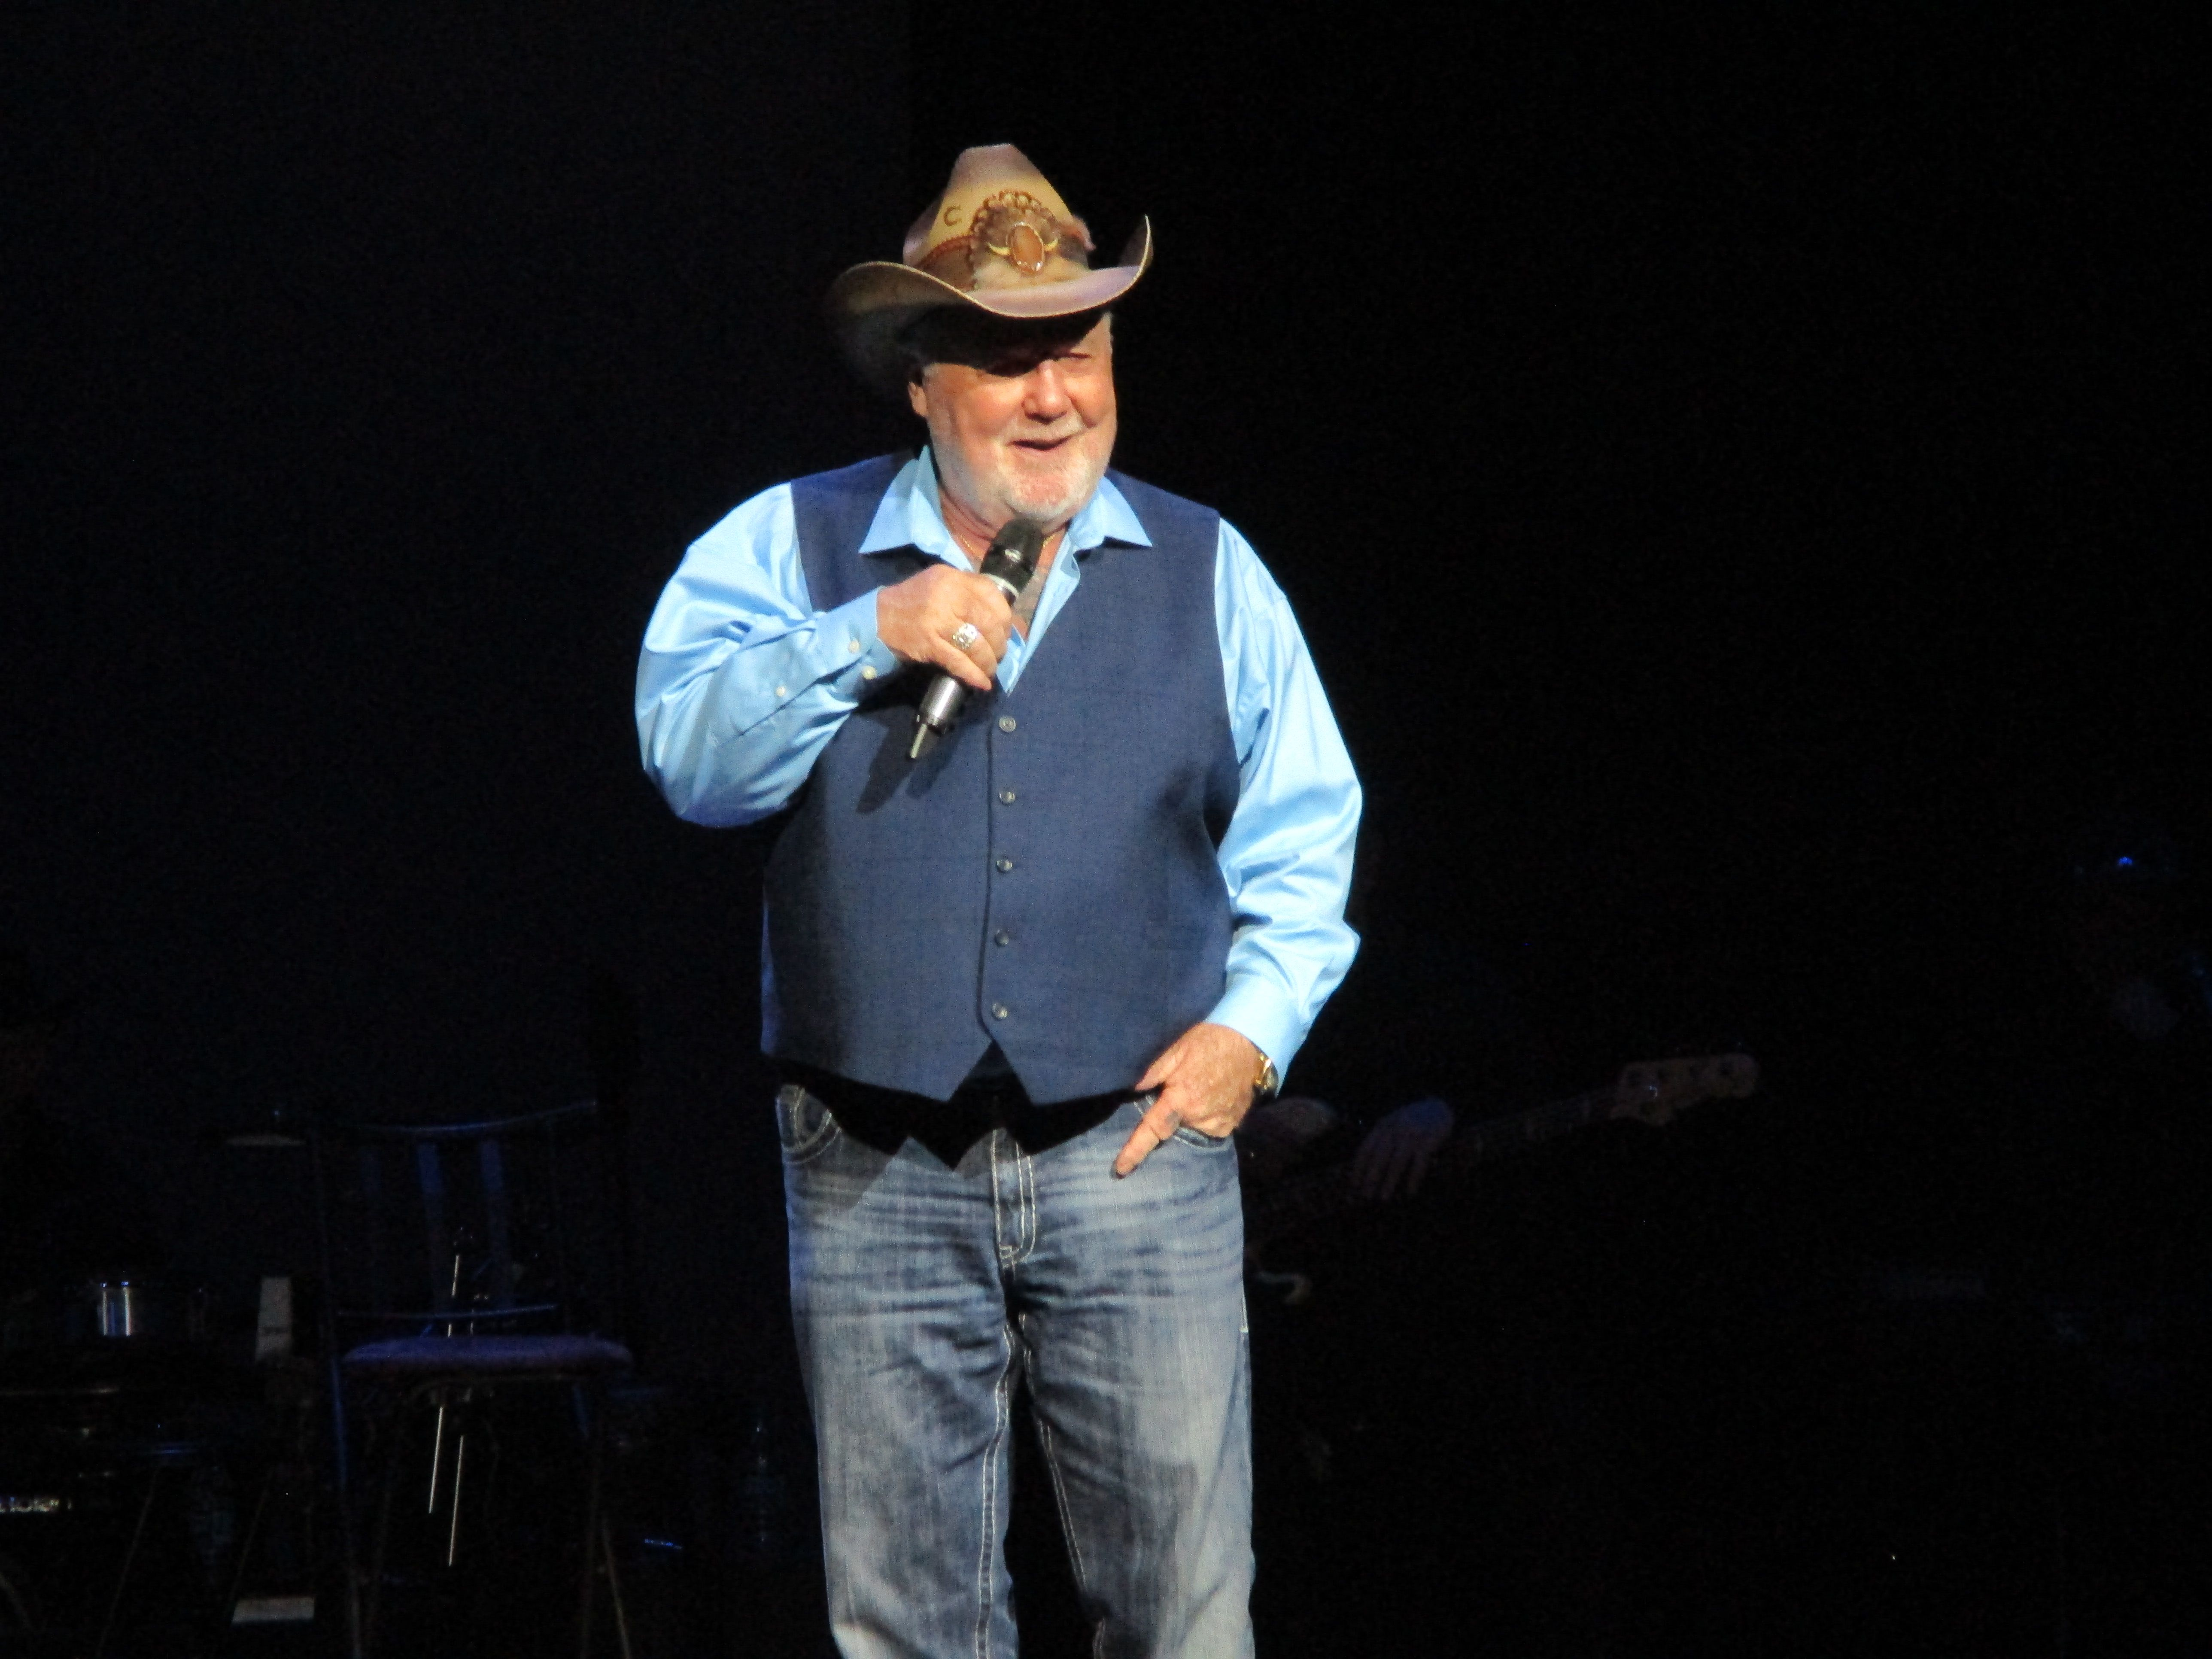 On Stage at Mickey Gilley and Johnny Lee Urban Cowboy Reunion Show